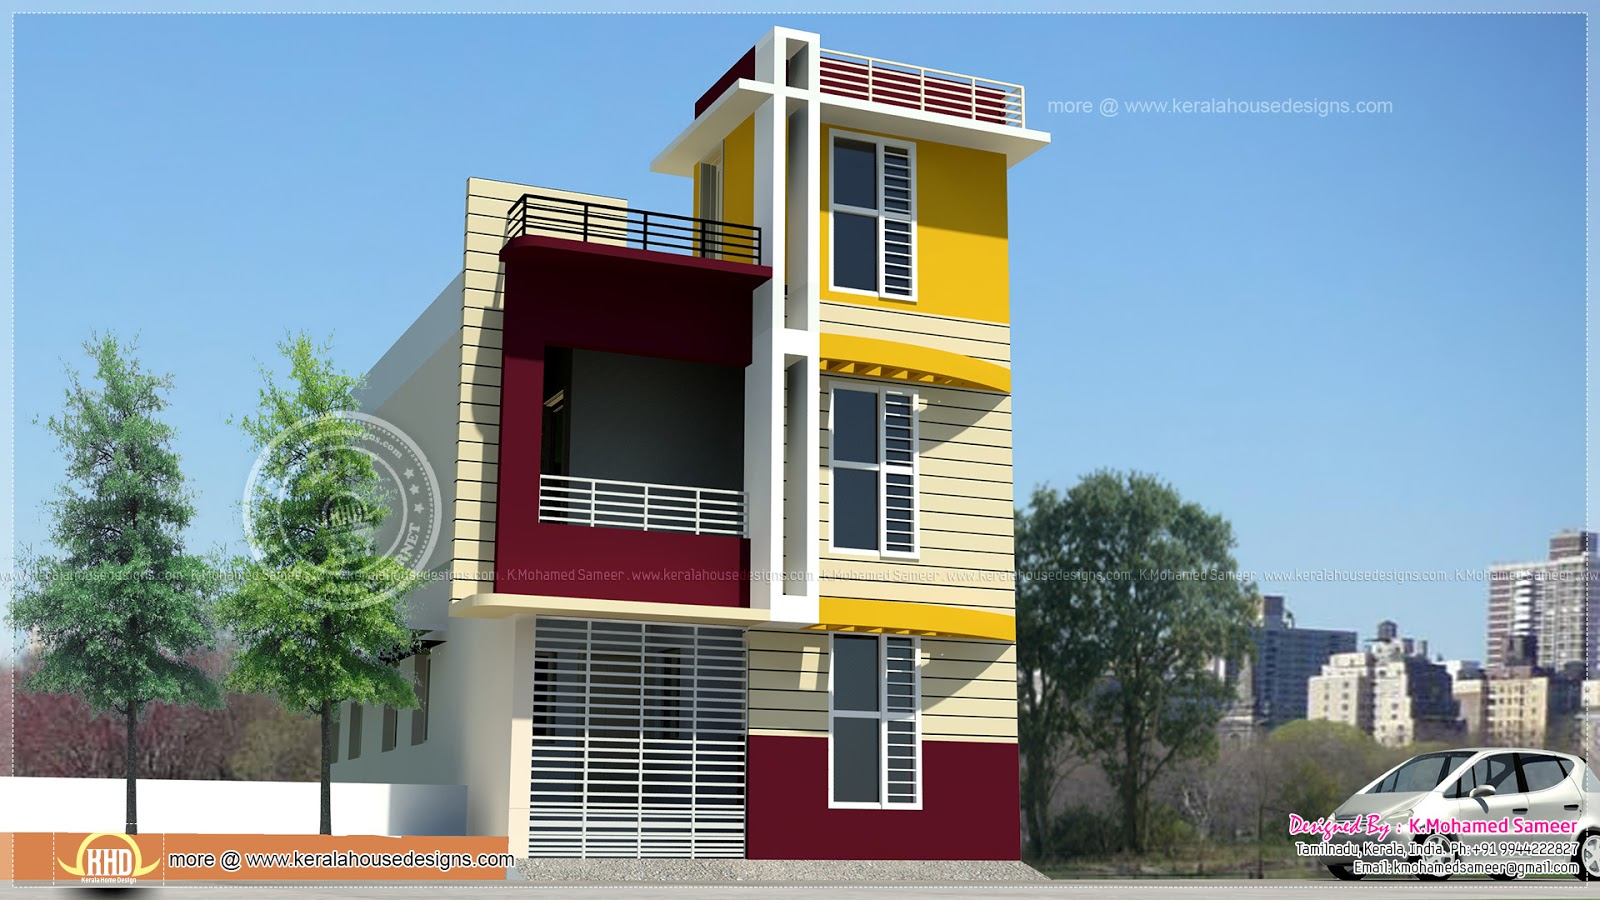 Tamilnadu style 3 storey house elevation kerala home for Tamilnadu house designs photos